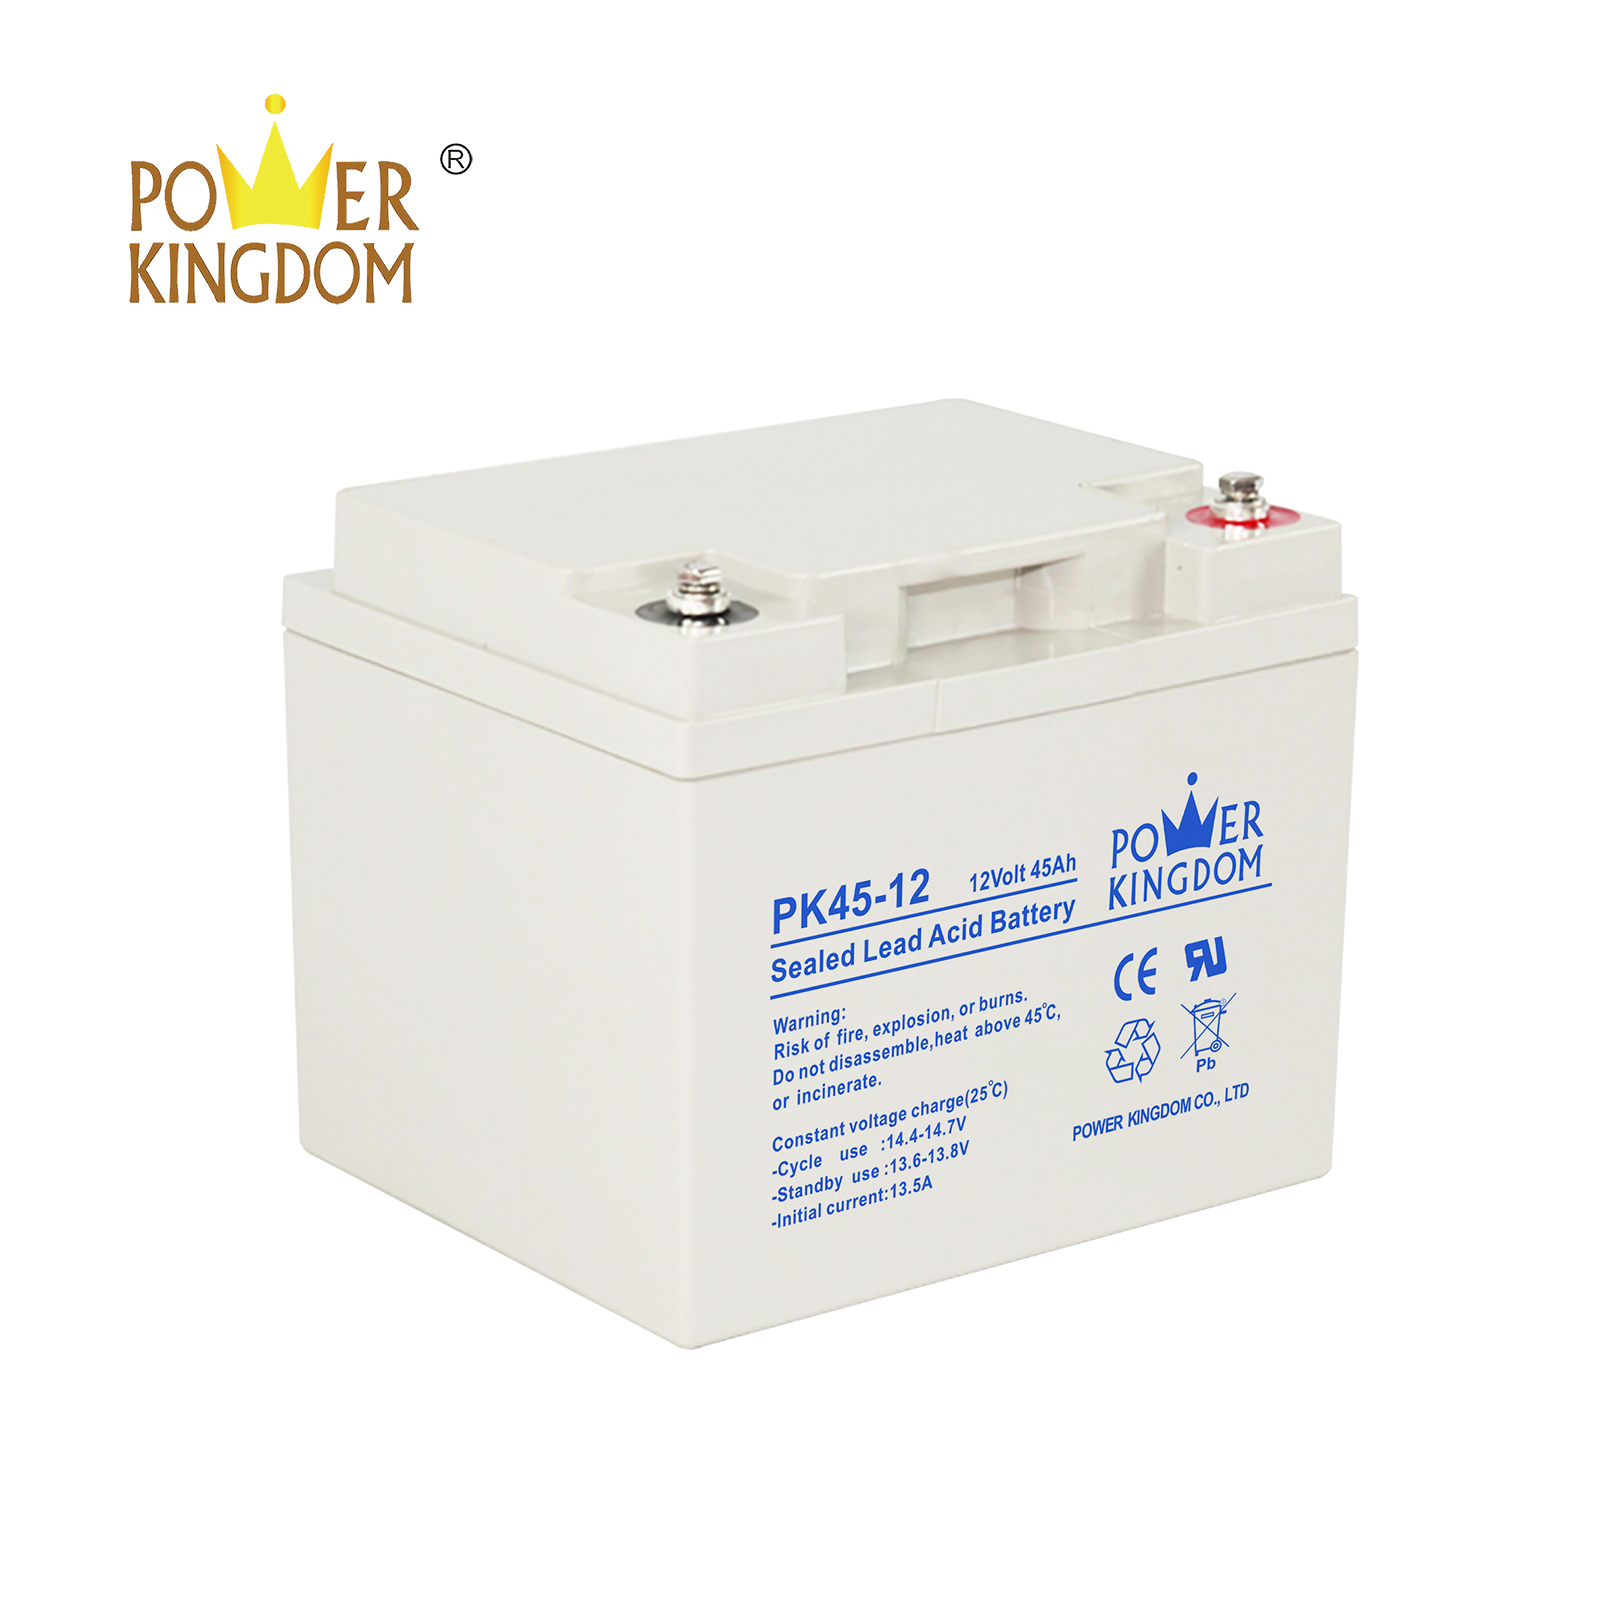 Power Kingdom agm car battery for sale inquire now solar and wind power system-2